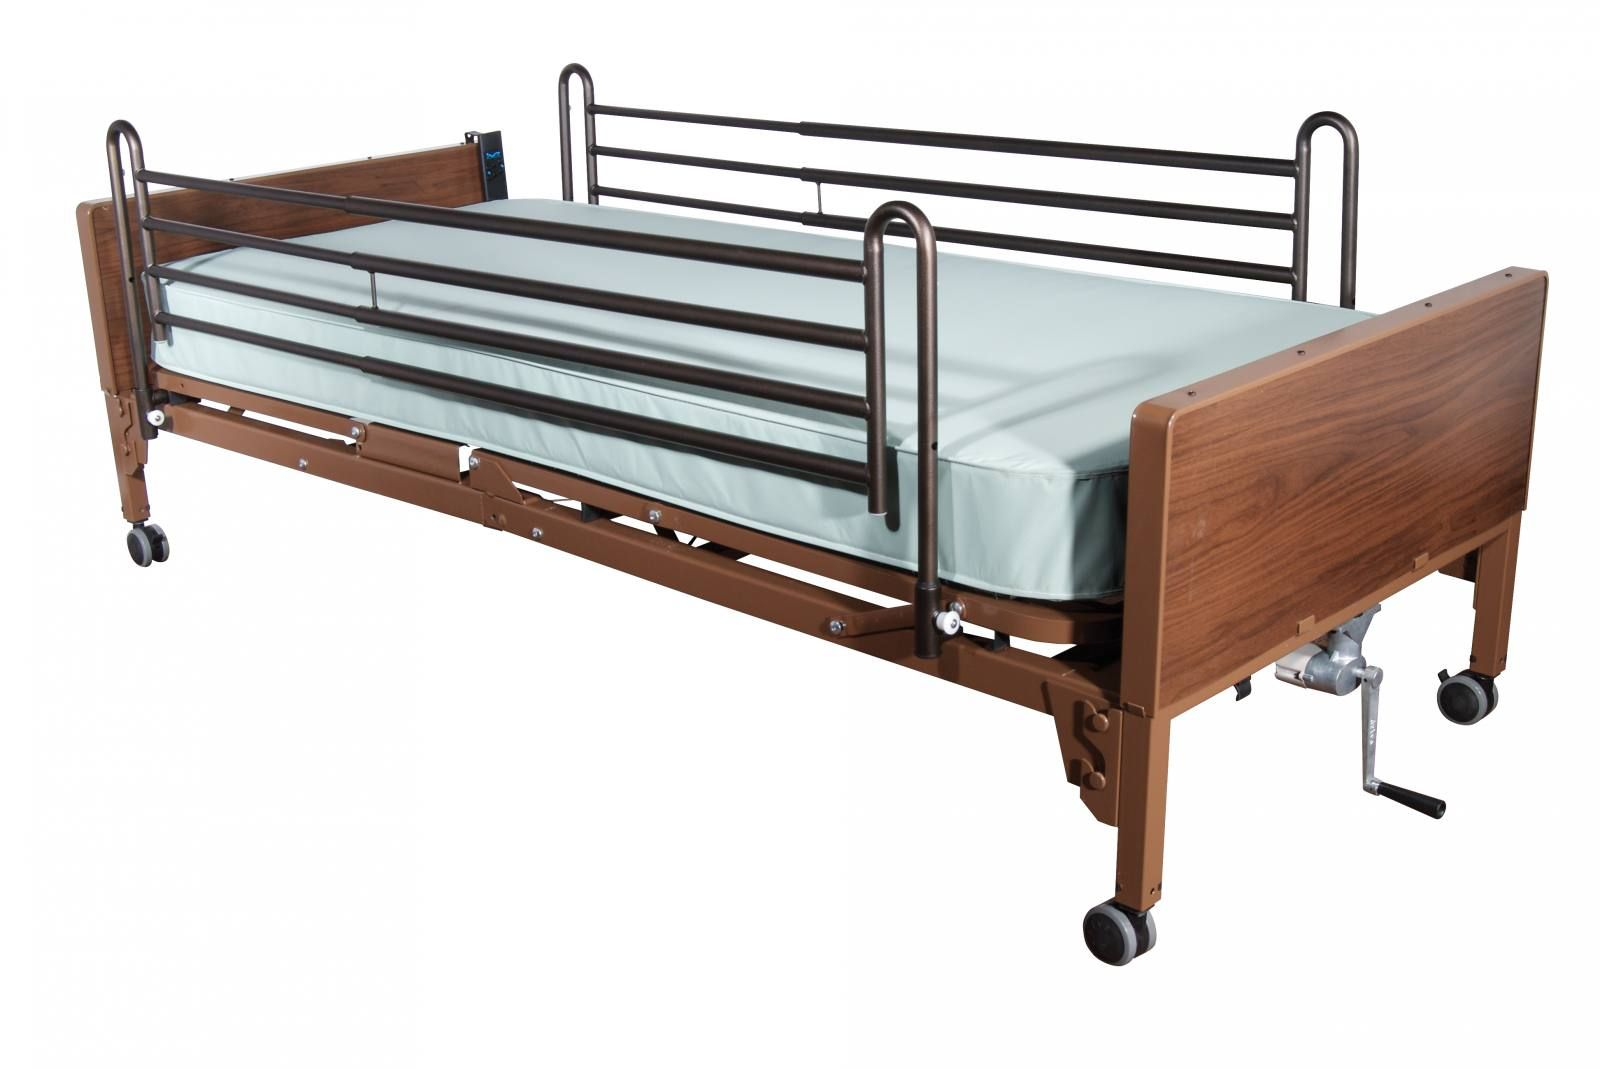 Delta Ultra Light Full Electric Bed Hospital bed, Bed